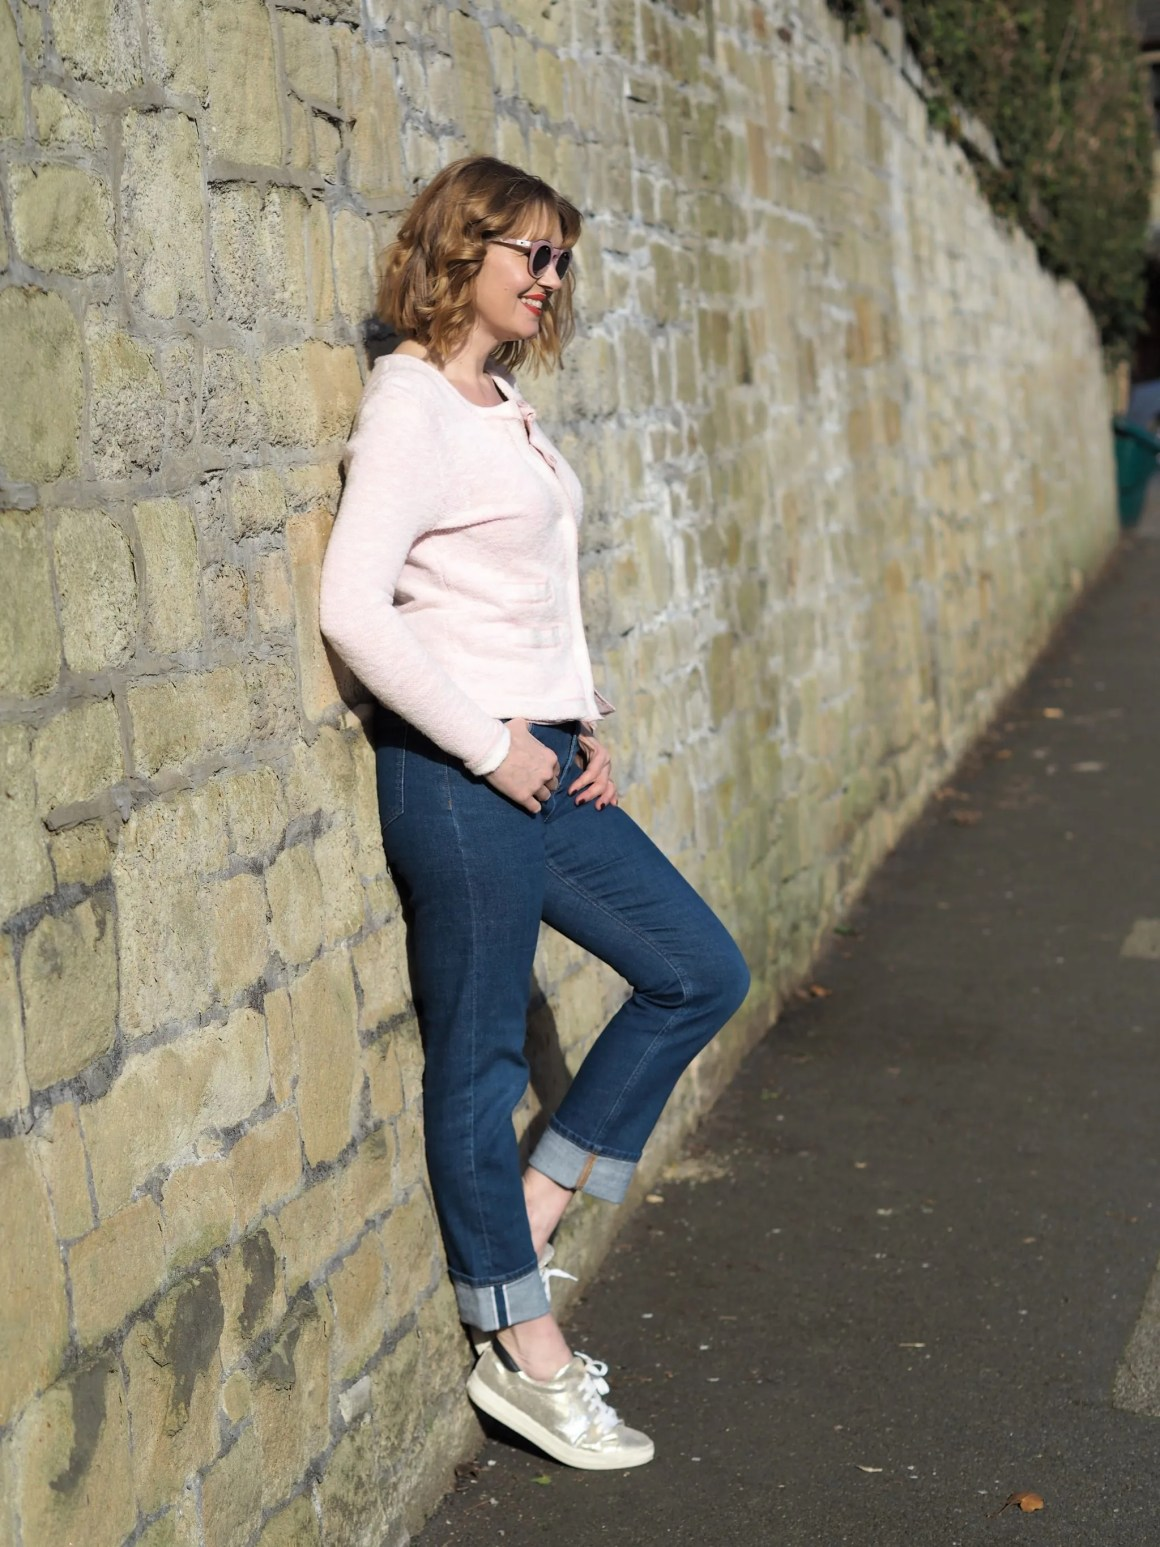 Pala Zola pink marble sunglasses girlfriend jeans and knitted cotton Chanel style jacket